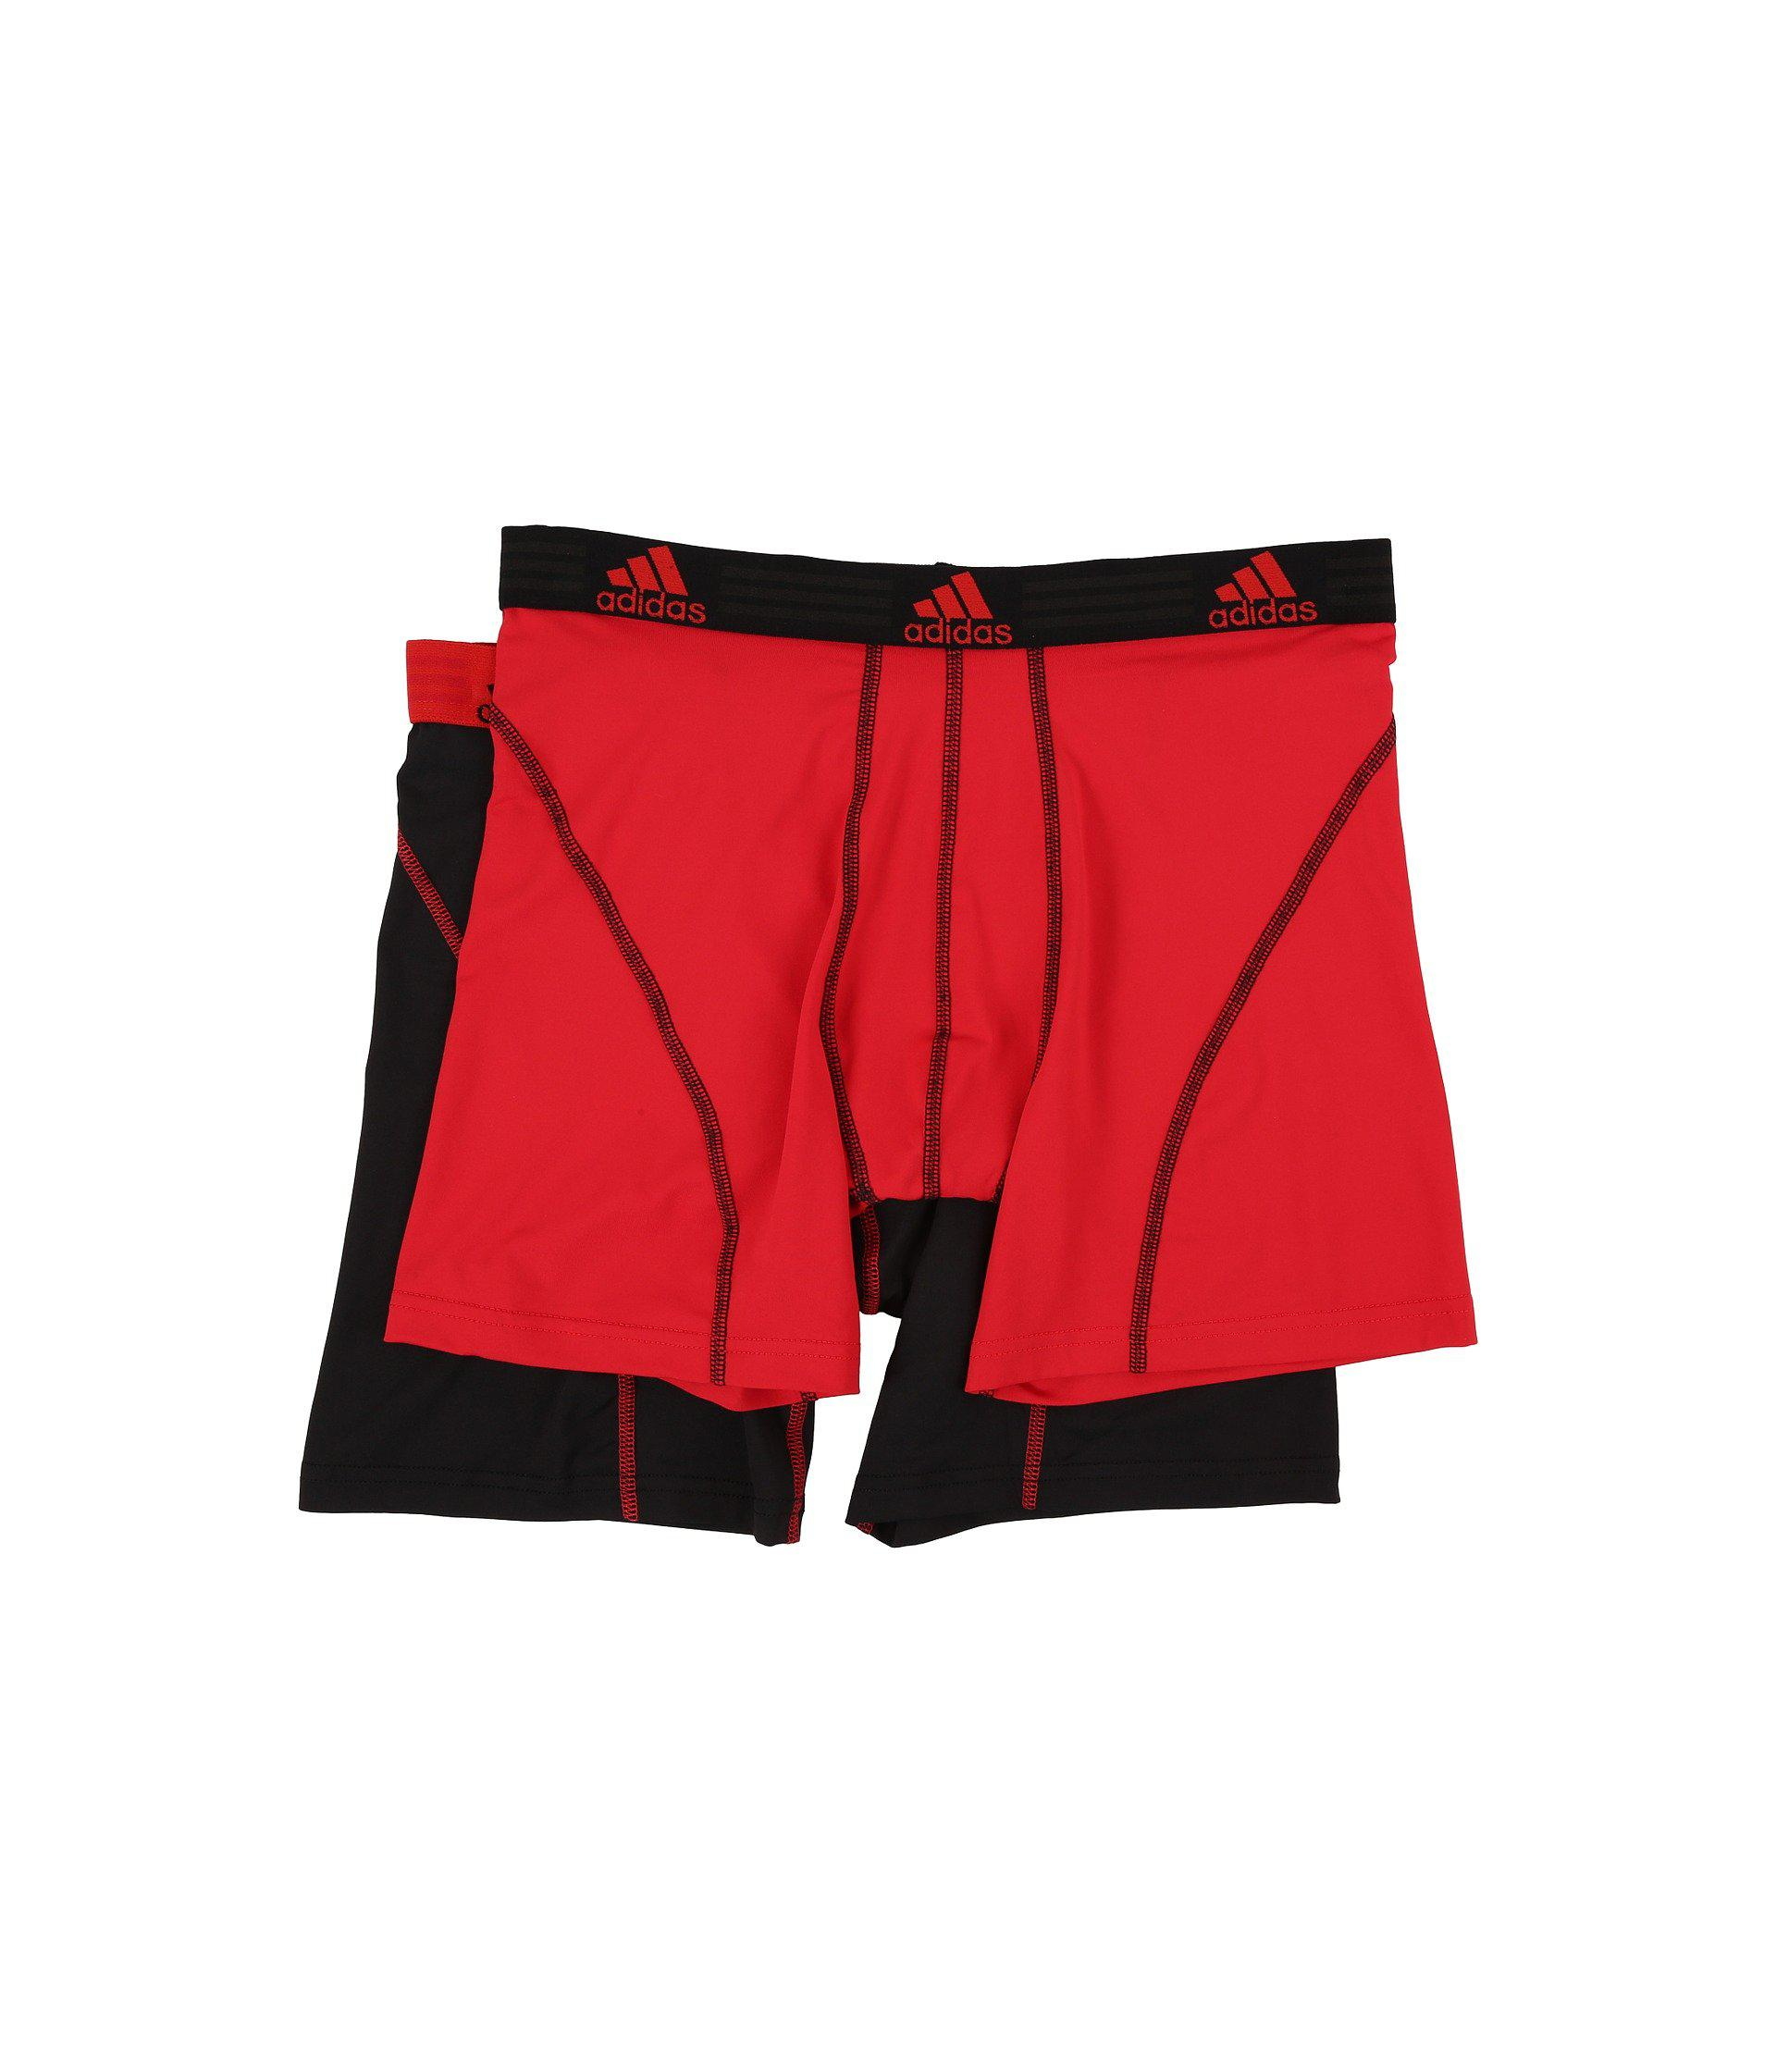 04dfb8e46160 Adidas - Red Sport Performance Climalite 2-pack Boxer Brief (black black .  View fullscreen